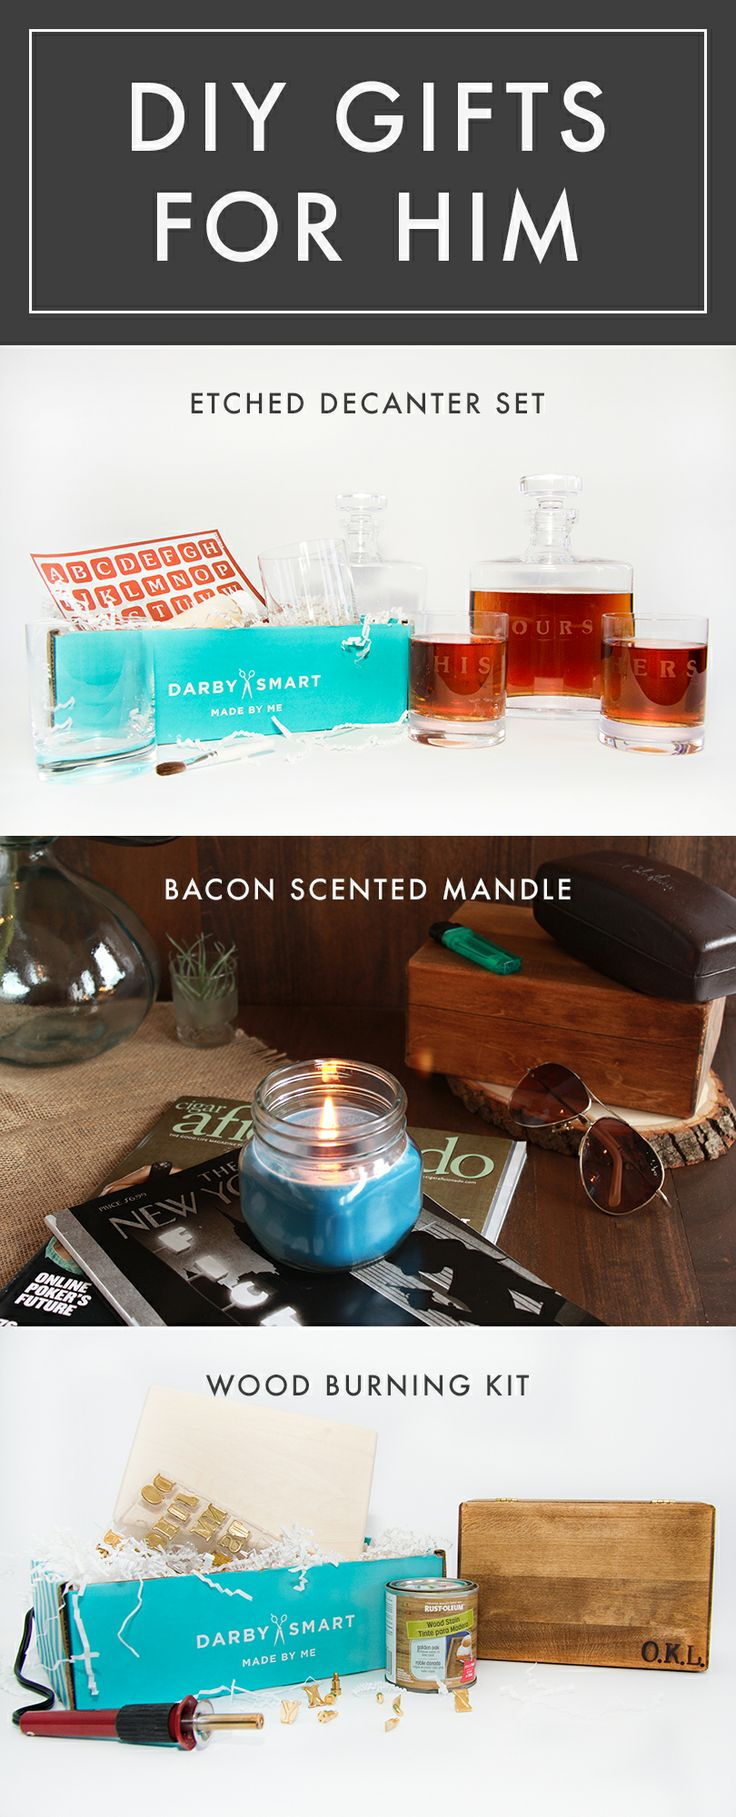 Guys can craft too.   #Darbysmart has it all figured out. Save $10.00 when ordering, use code perfect gift